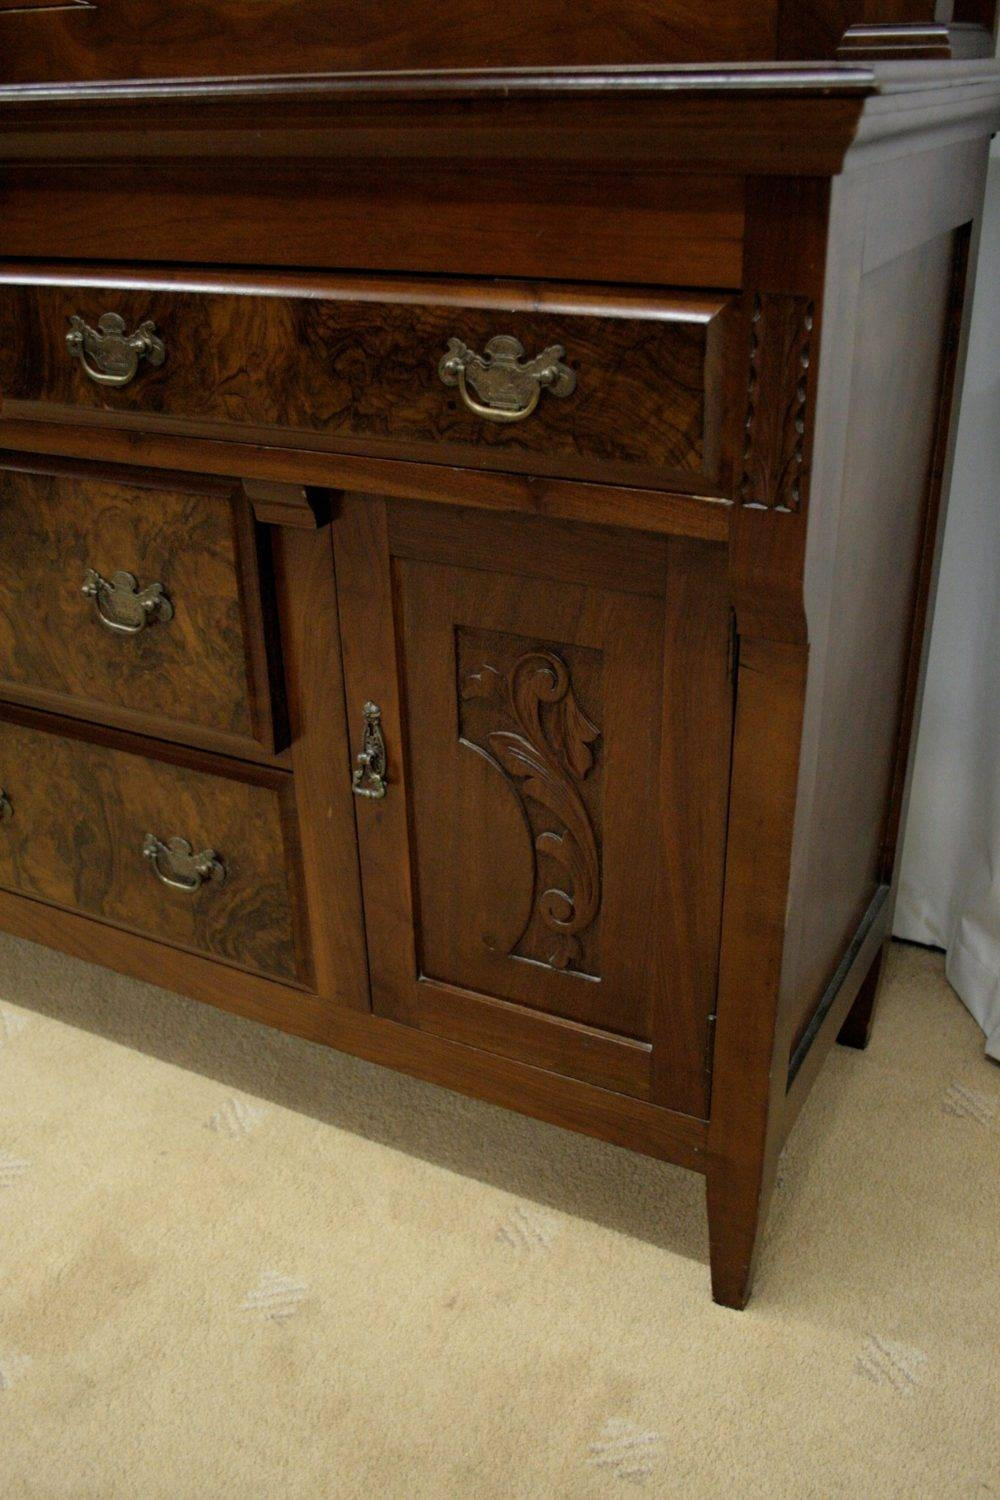 Edwardian Mahogany Mirror Backed Sideboard - Antiques Atlas inside Antique Sideboards With Mirror (Image 5 of 15)